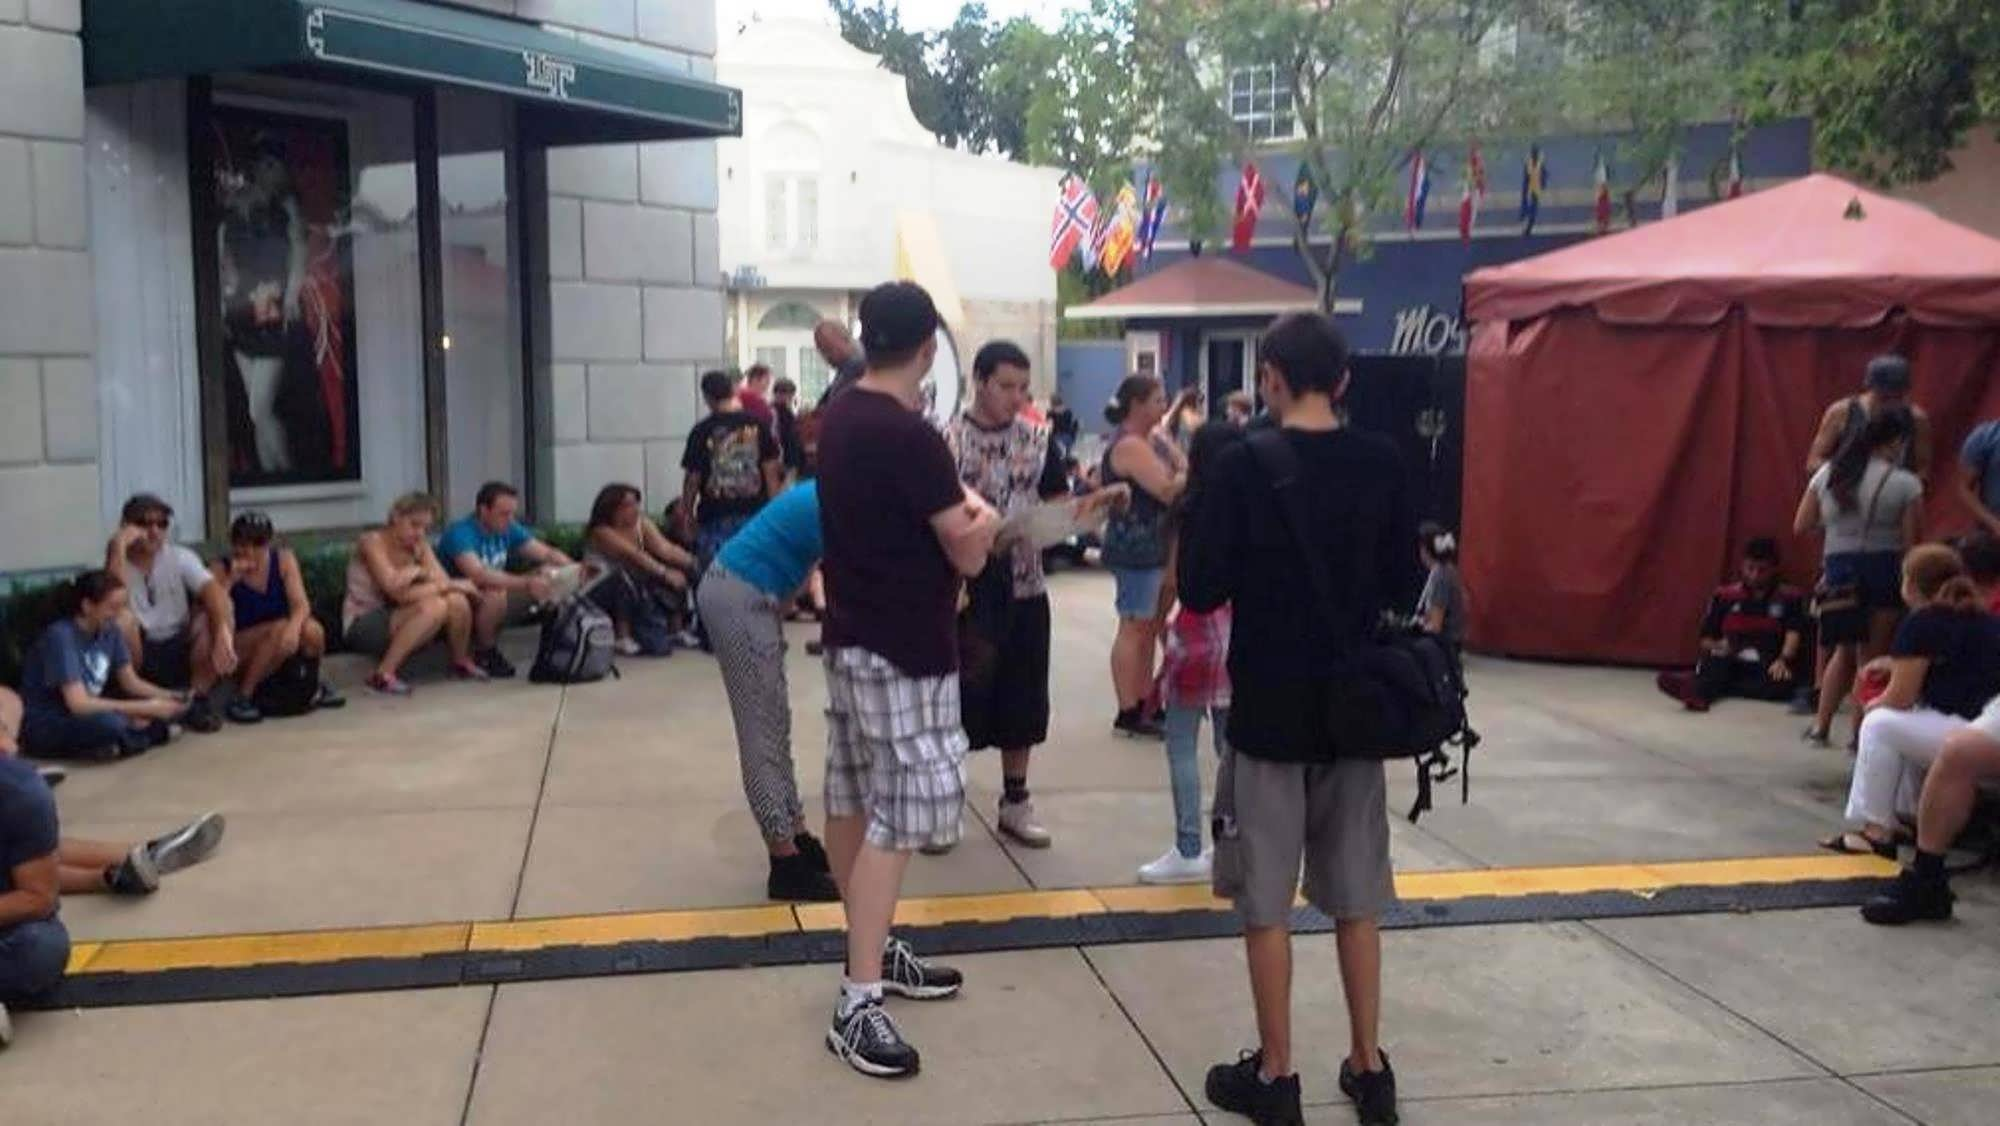 HHN early admission (Hello Kitty holding area).